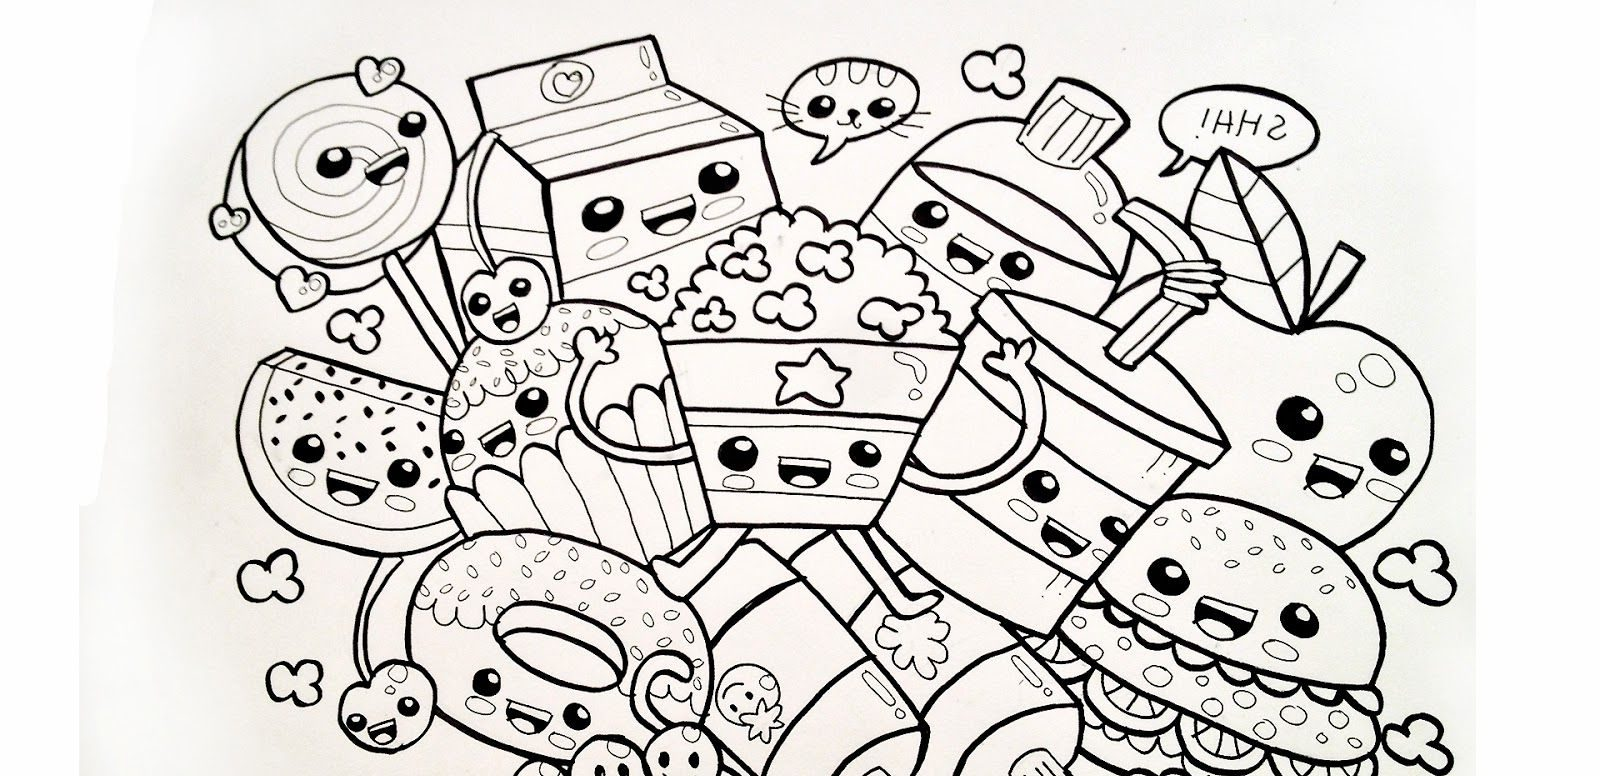 Kawaii Coloring Pages | Free coloring pages printable for ...